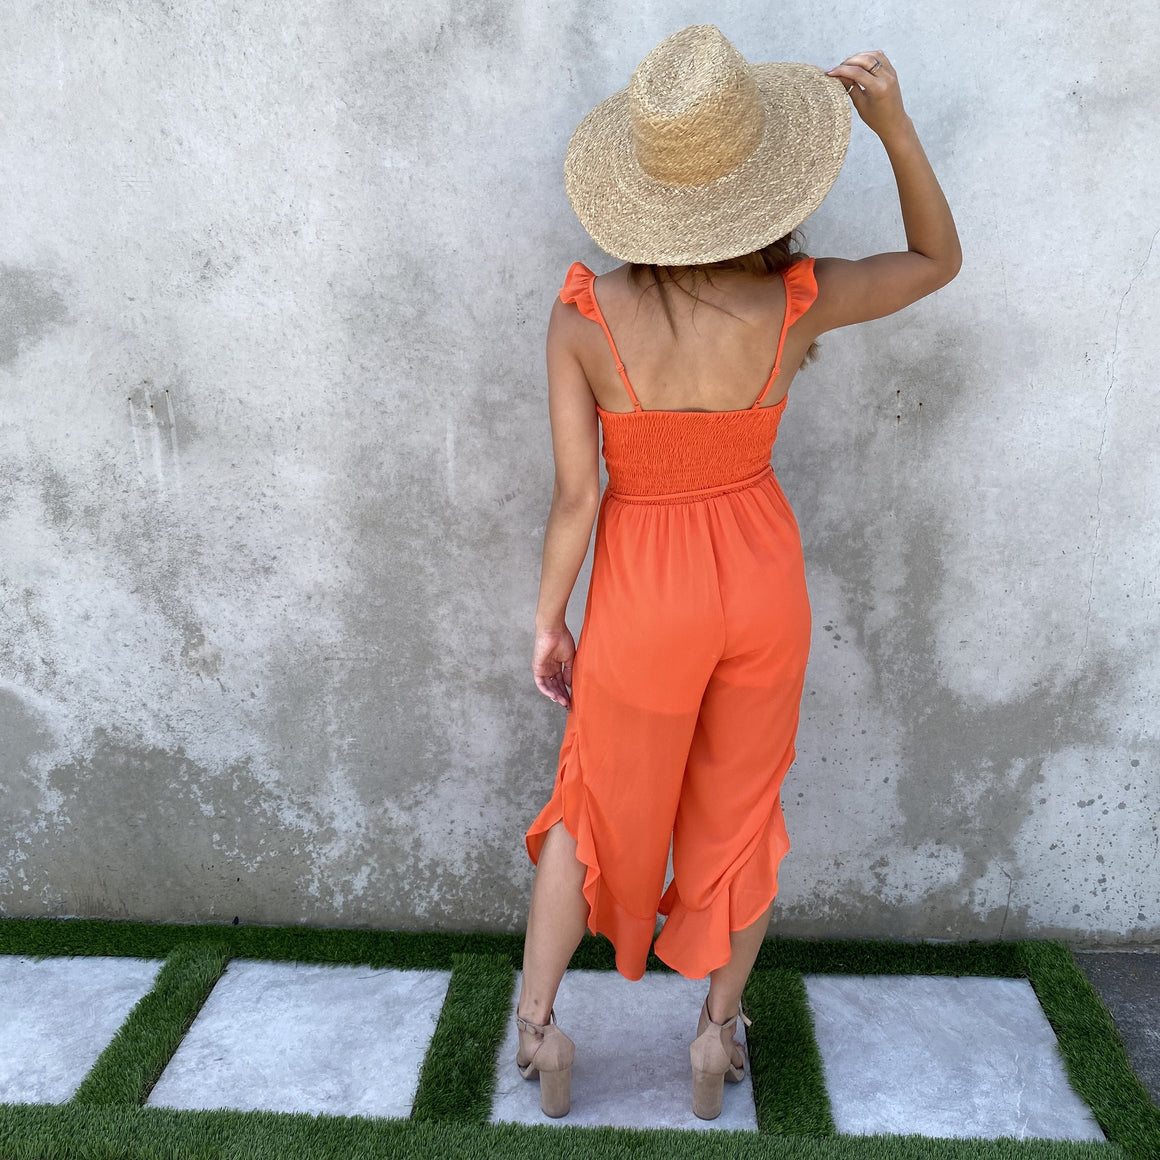 Summer Playtime Orange Jumpsuit - Dainty Hooligan